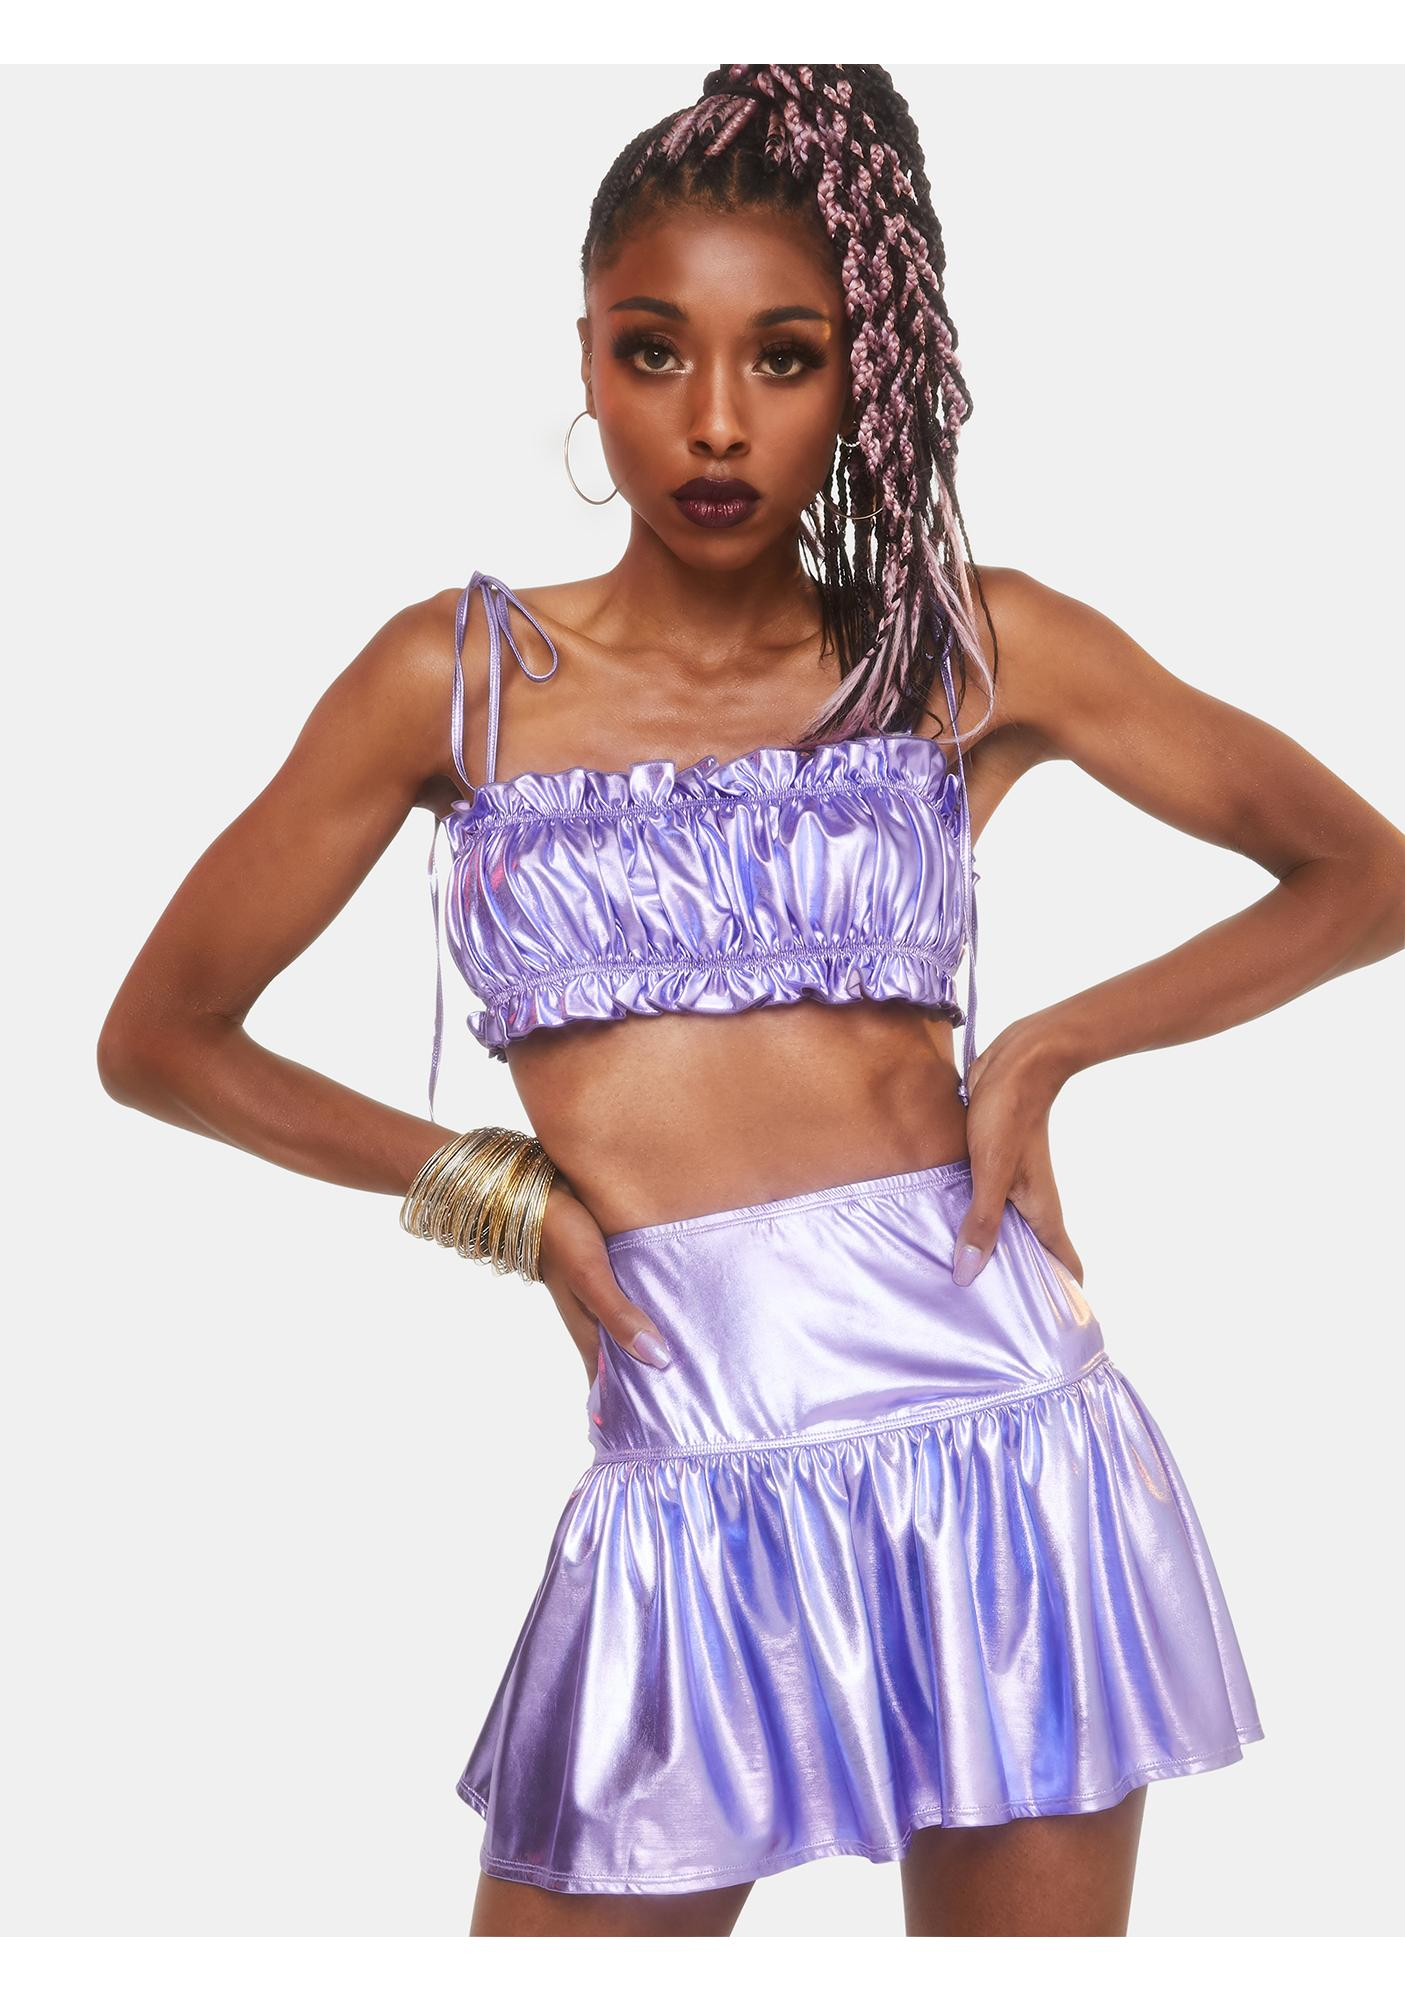 Club Exx Goddess Hour Metallic Skirt Set